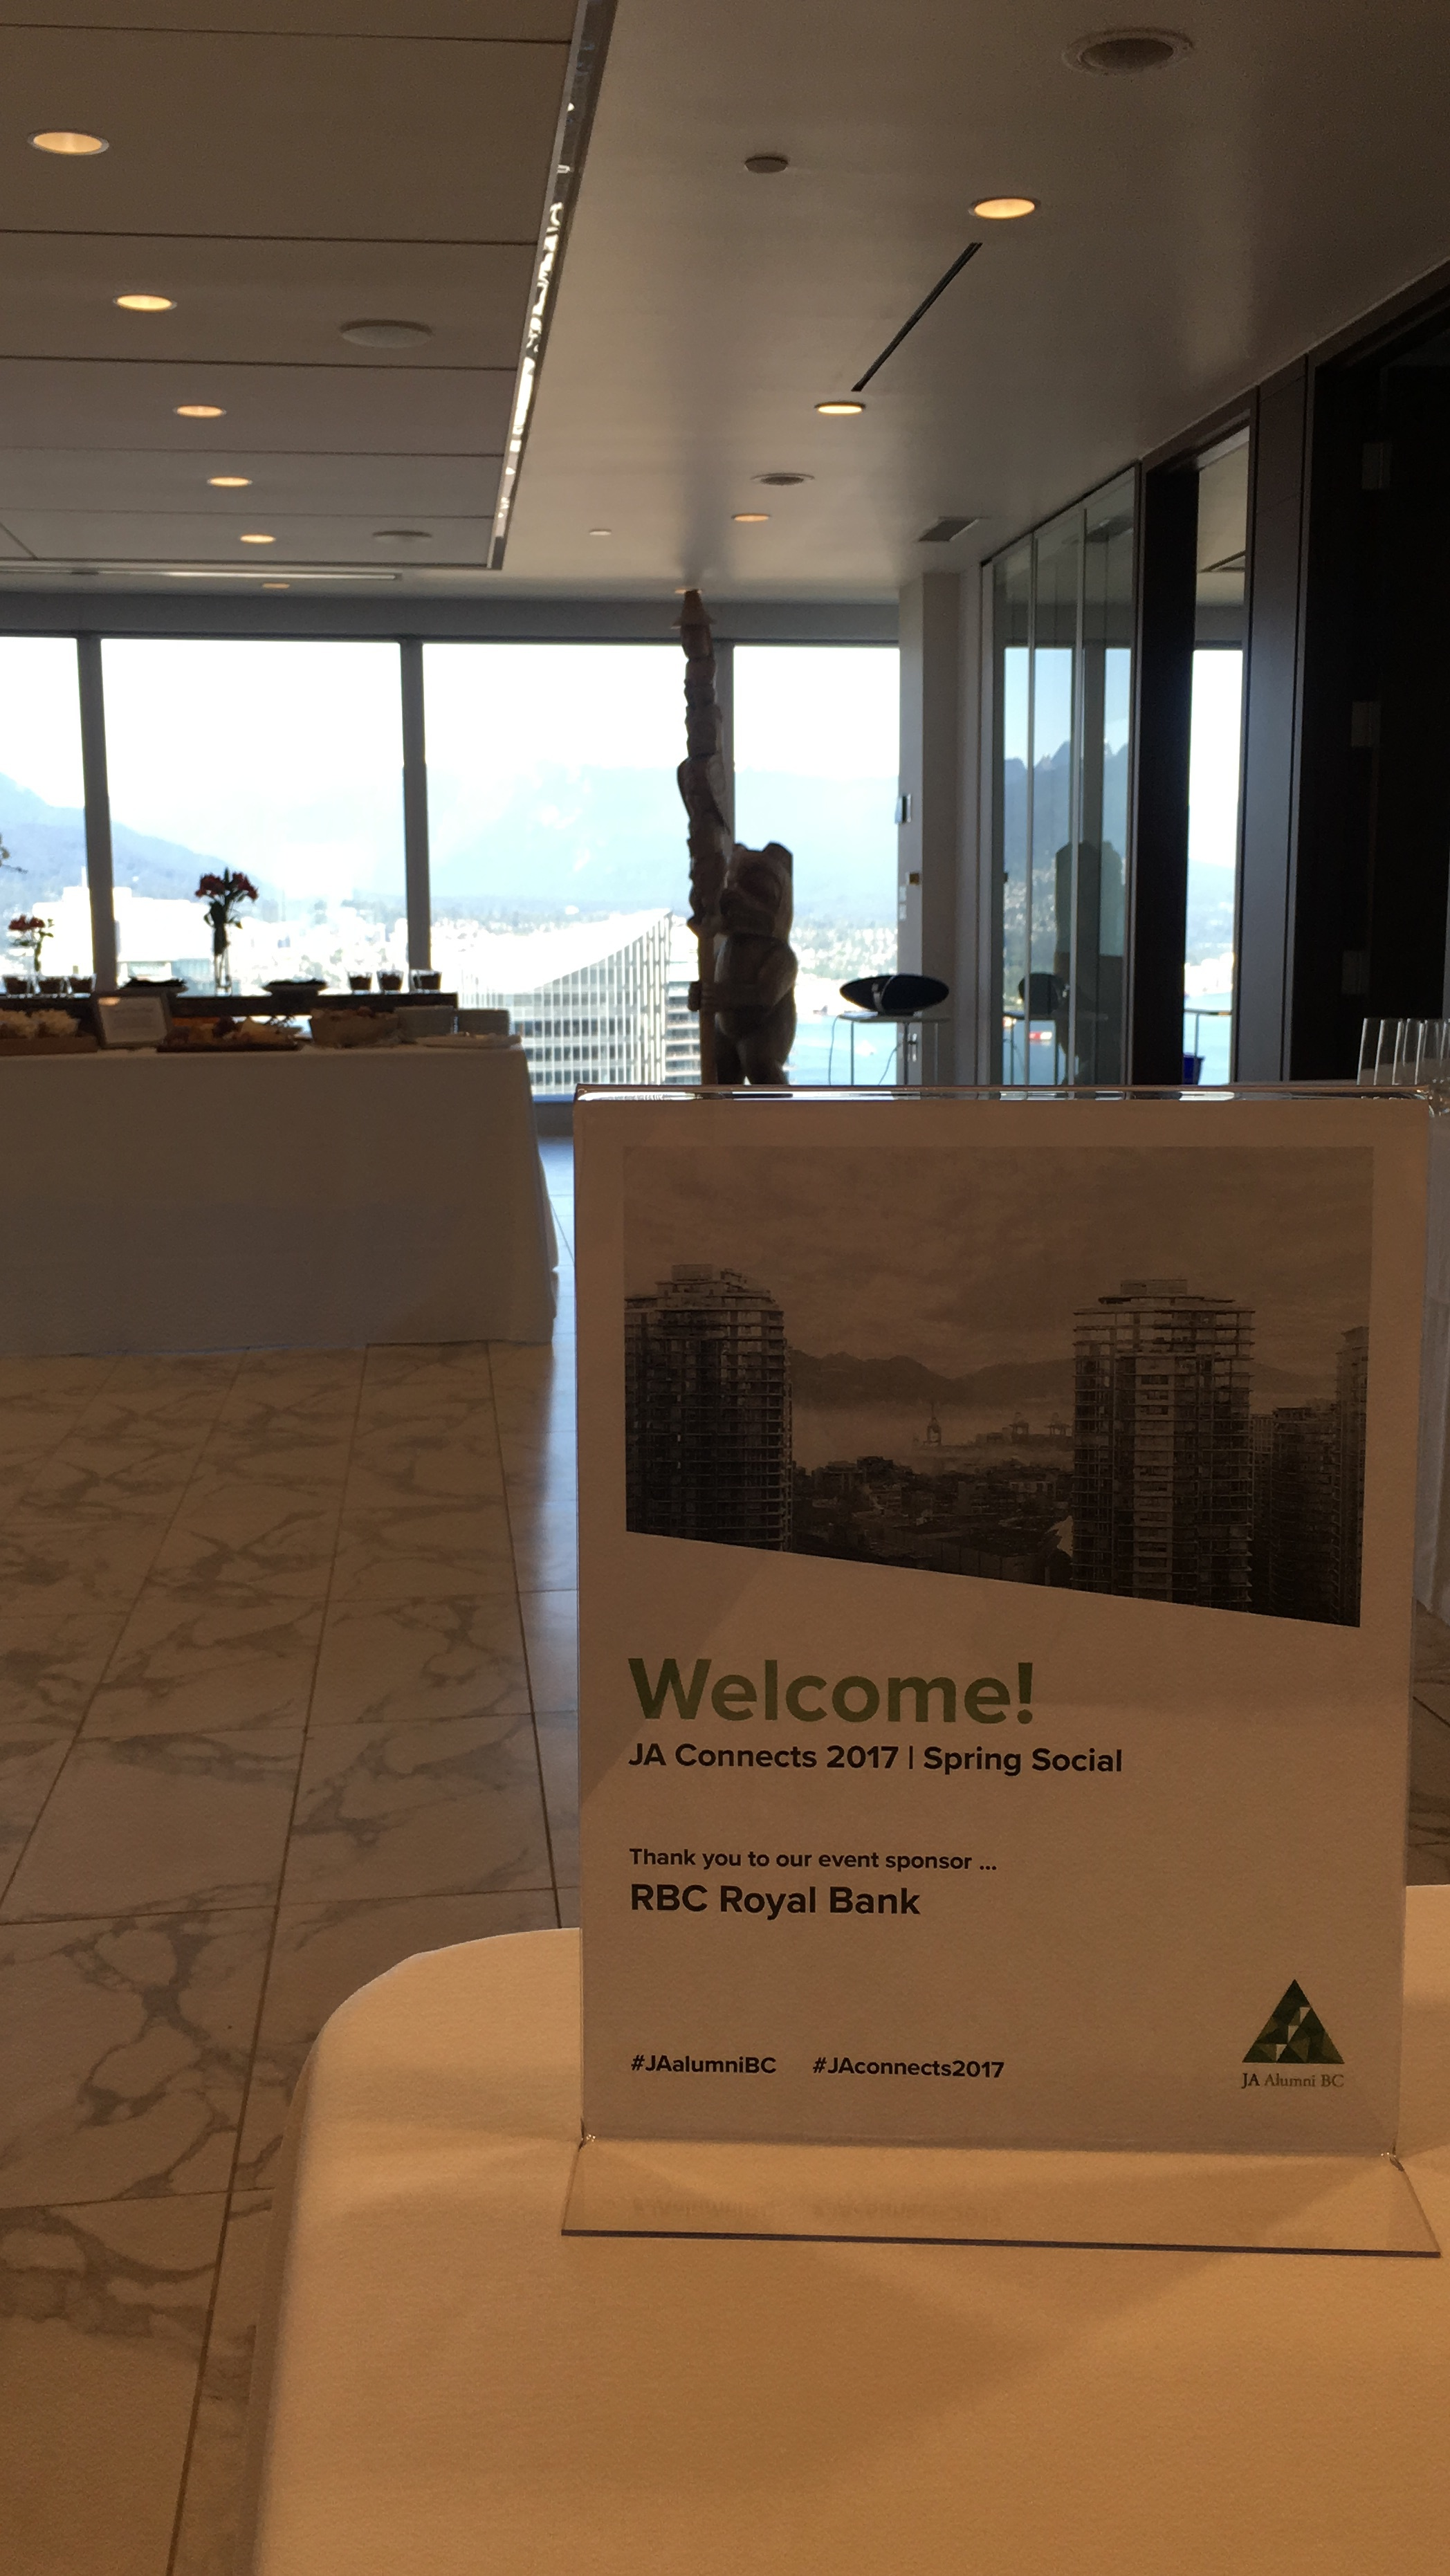 A snap shot of the 36th floor of the RBC building!